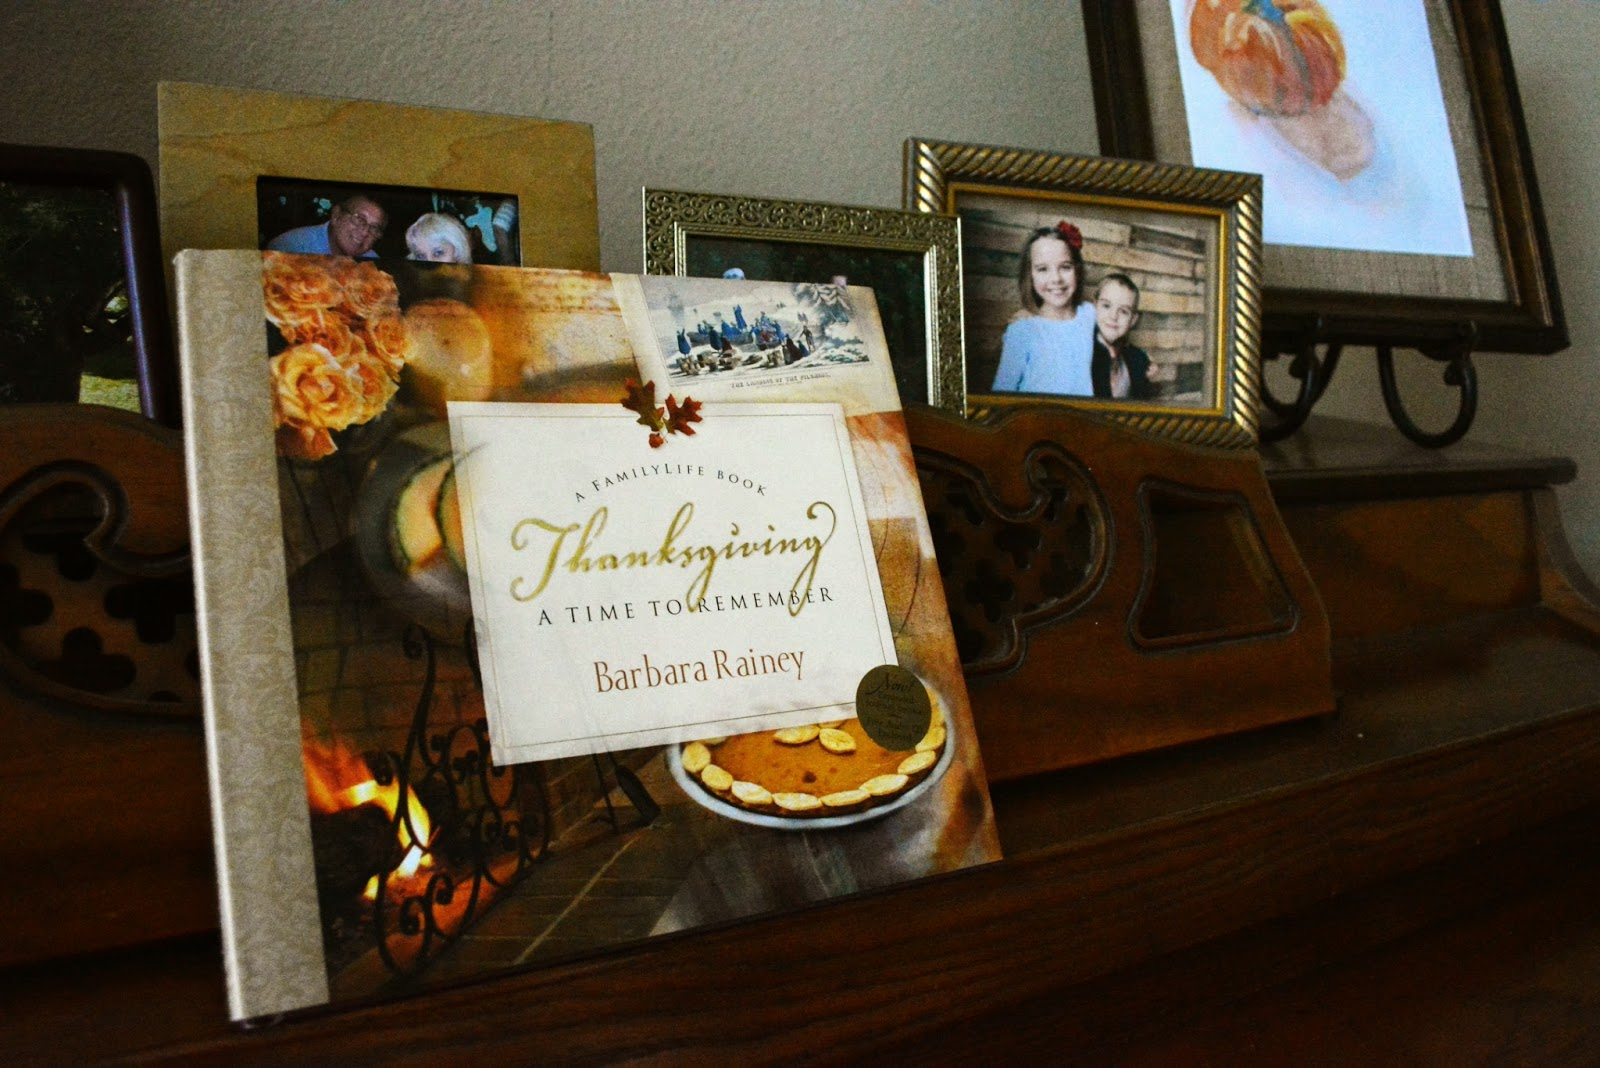 Thanksgiving by Barbara Rainey